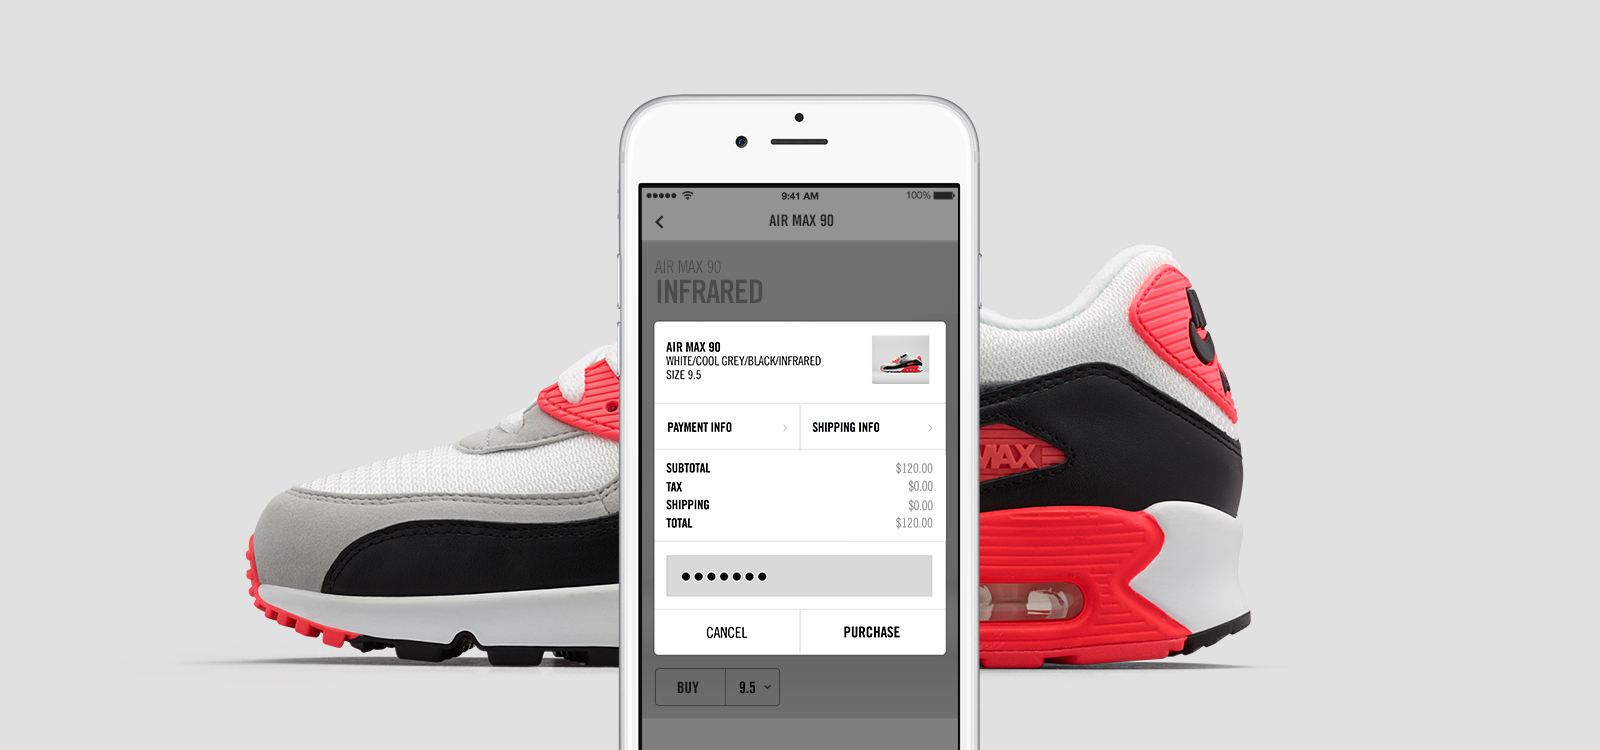 Using Snkrs Keyword Feature to Cop Surprise Nike Drops